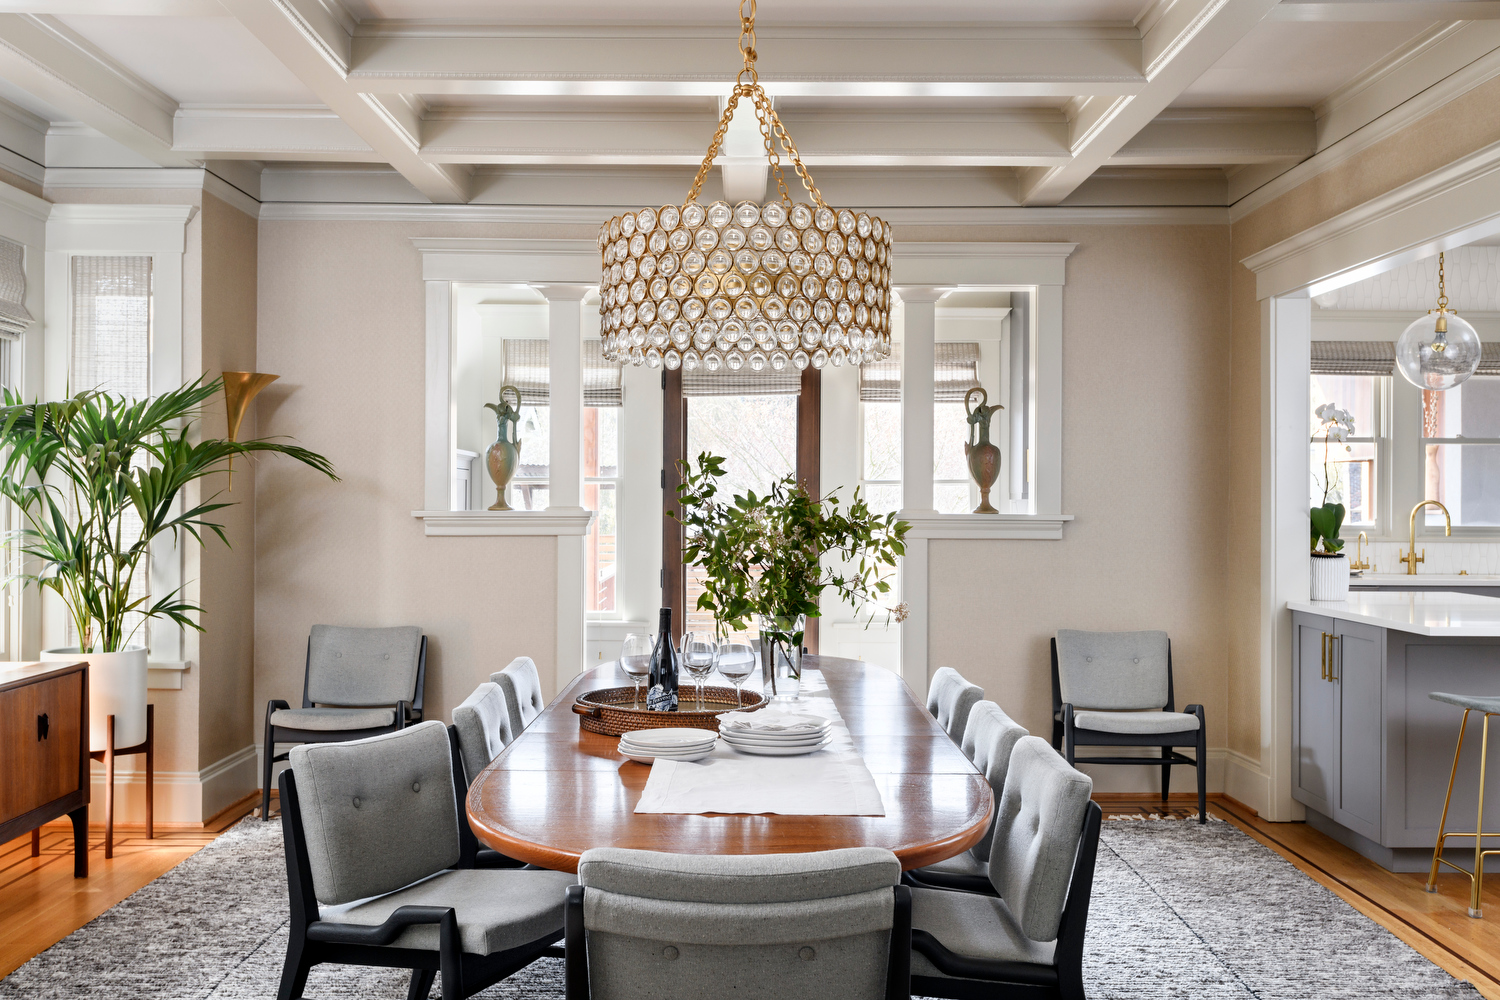 Holland Stephens Interiors - Dining room with new chandelier and mid century dining table and chairs with new upholstery.